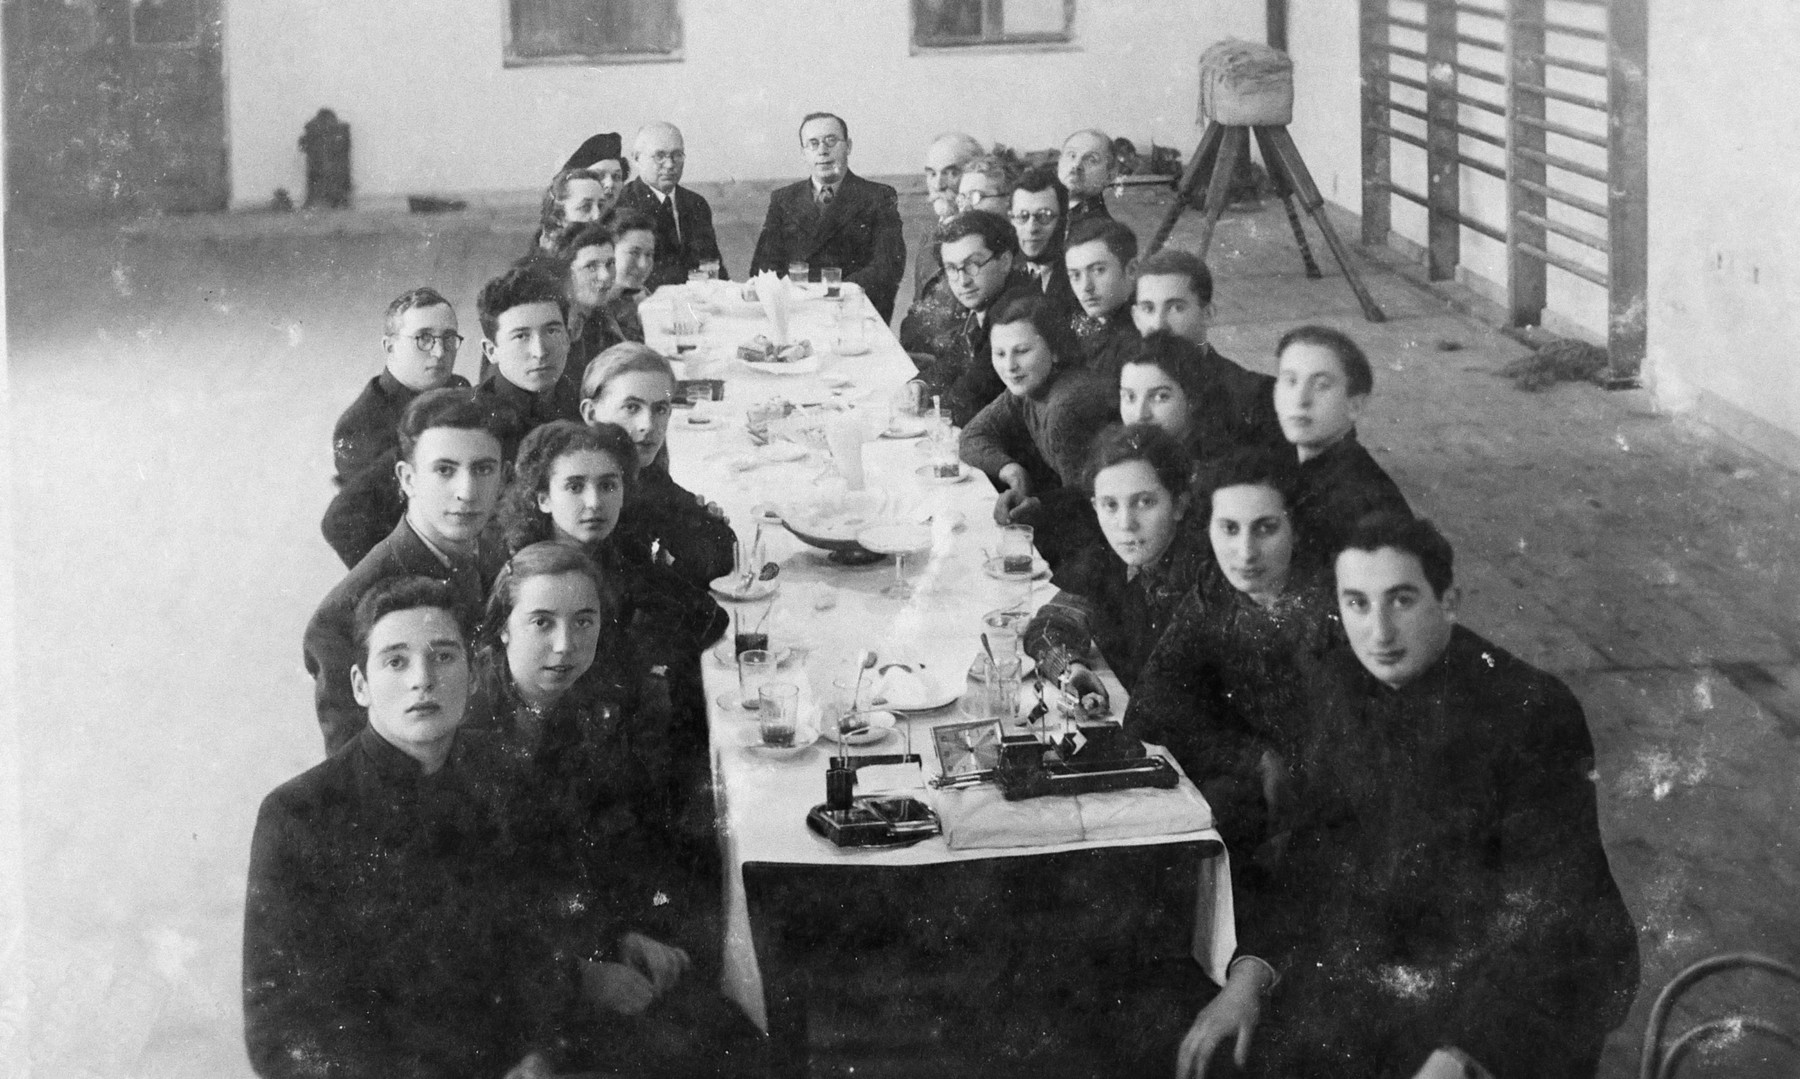 Students in their last year of a high school in Marijampole sit around a table set with glasses.  Aba Weinstein is seated fifth in the left row.